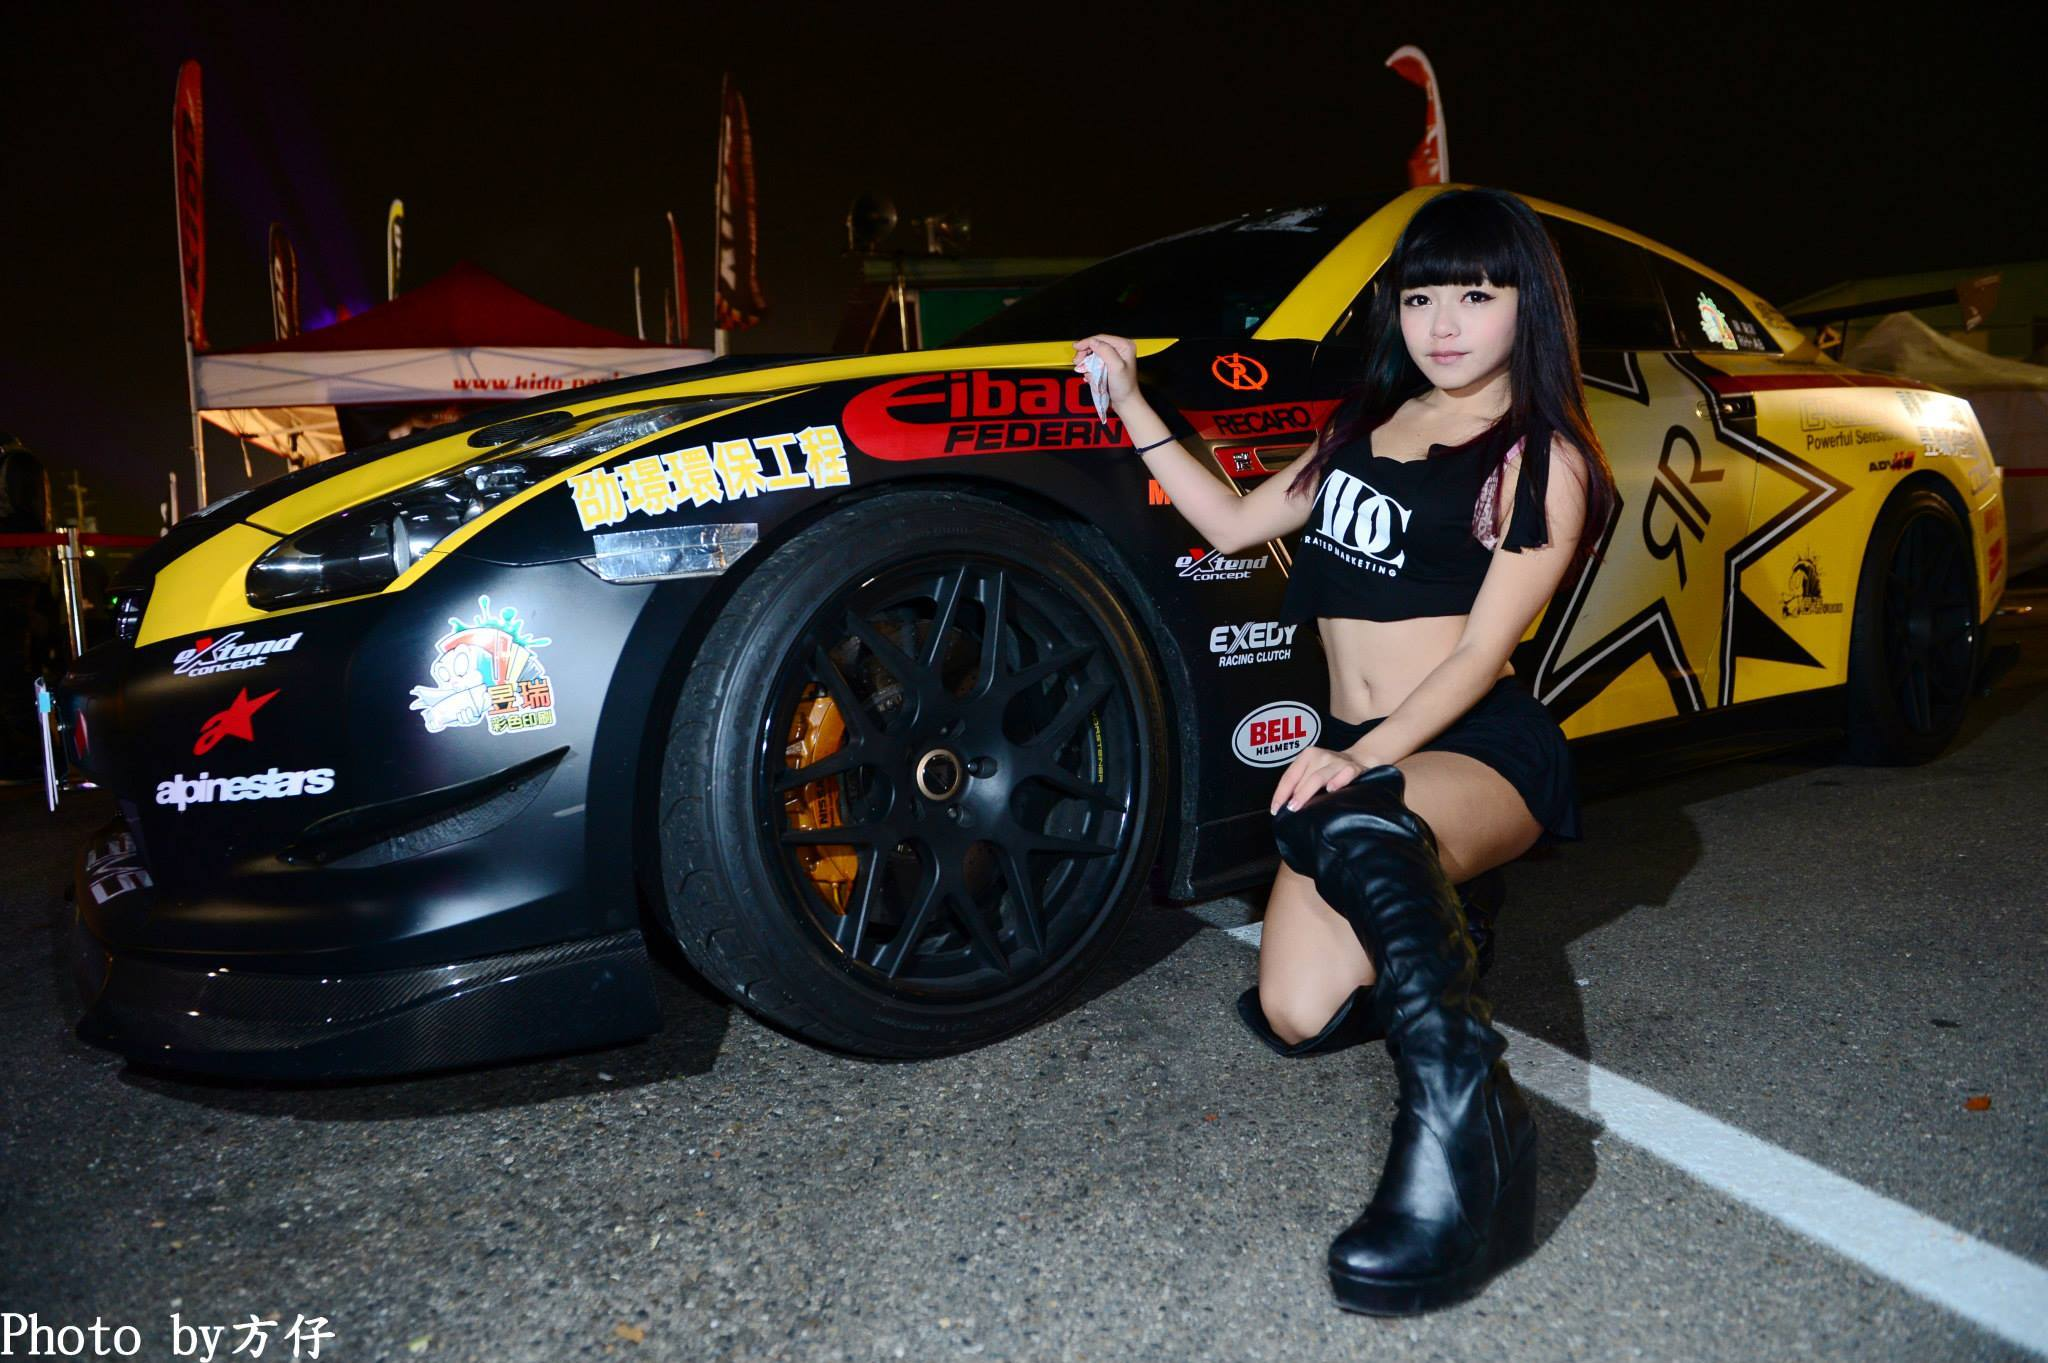 Taiwanese Boobkhana Has Stig Drifting A Trike And Screaming Girls